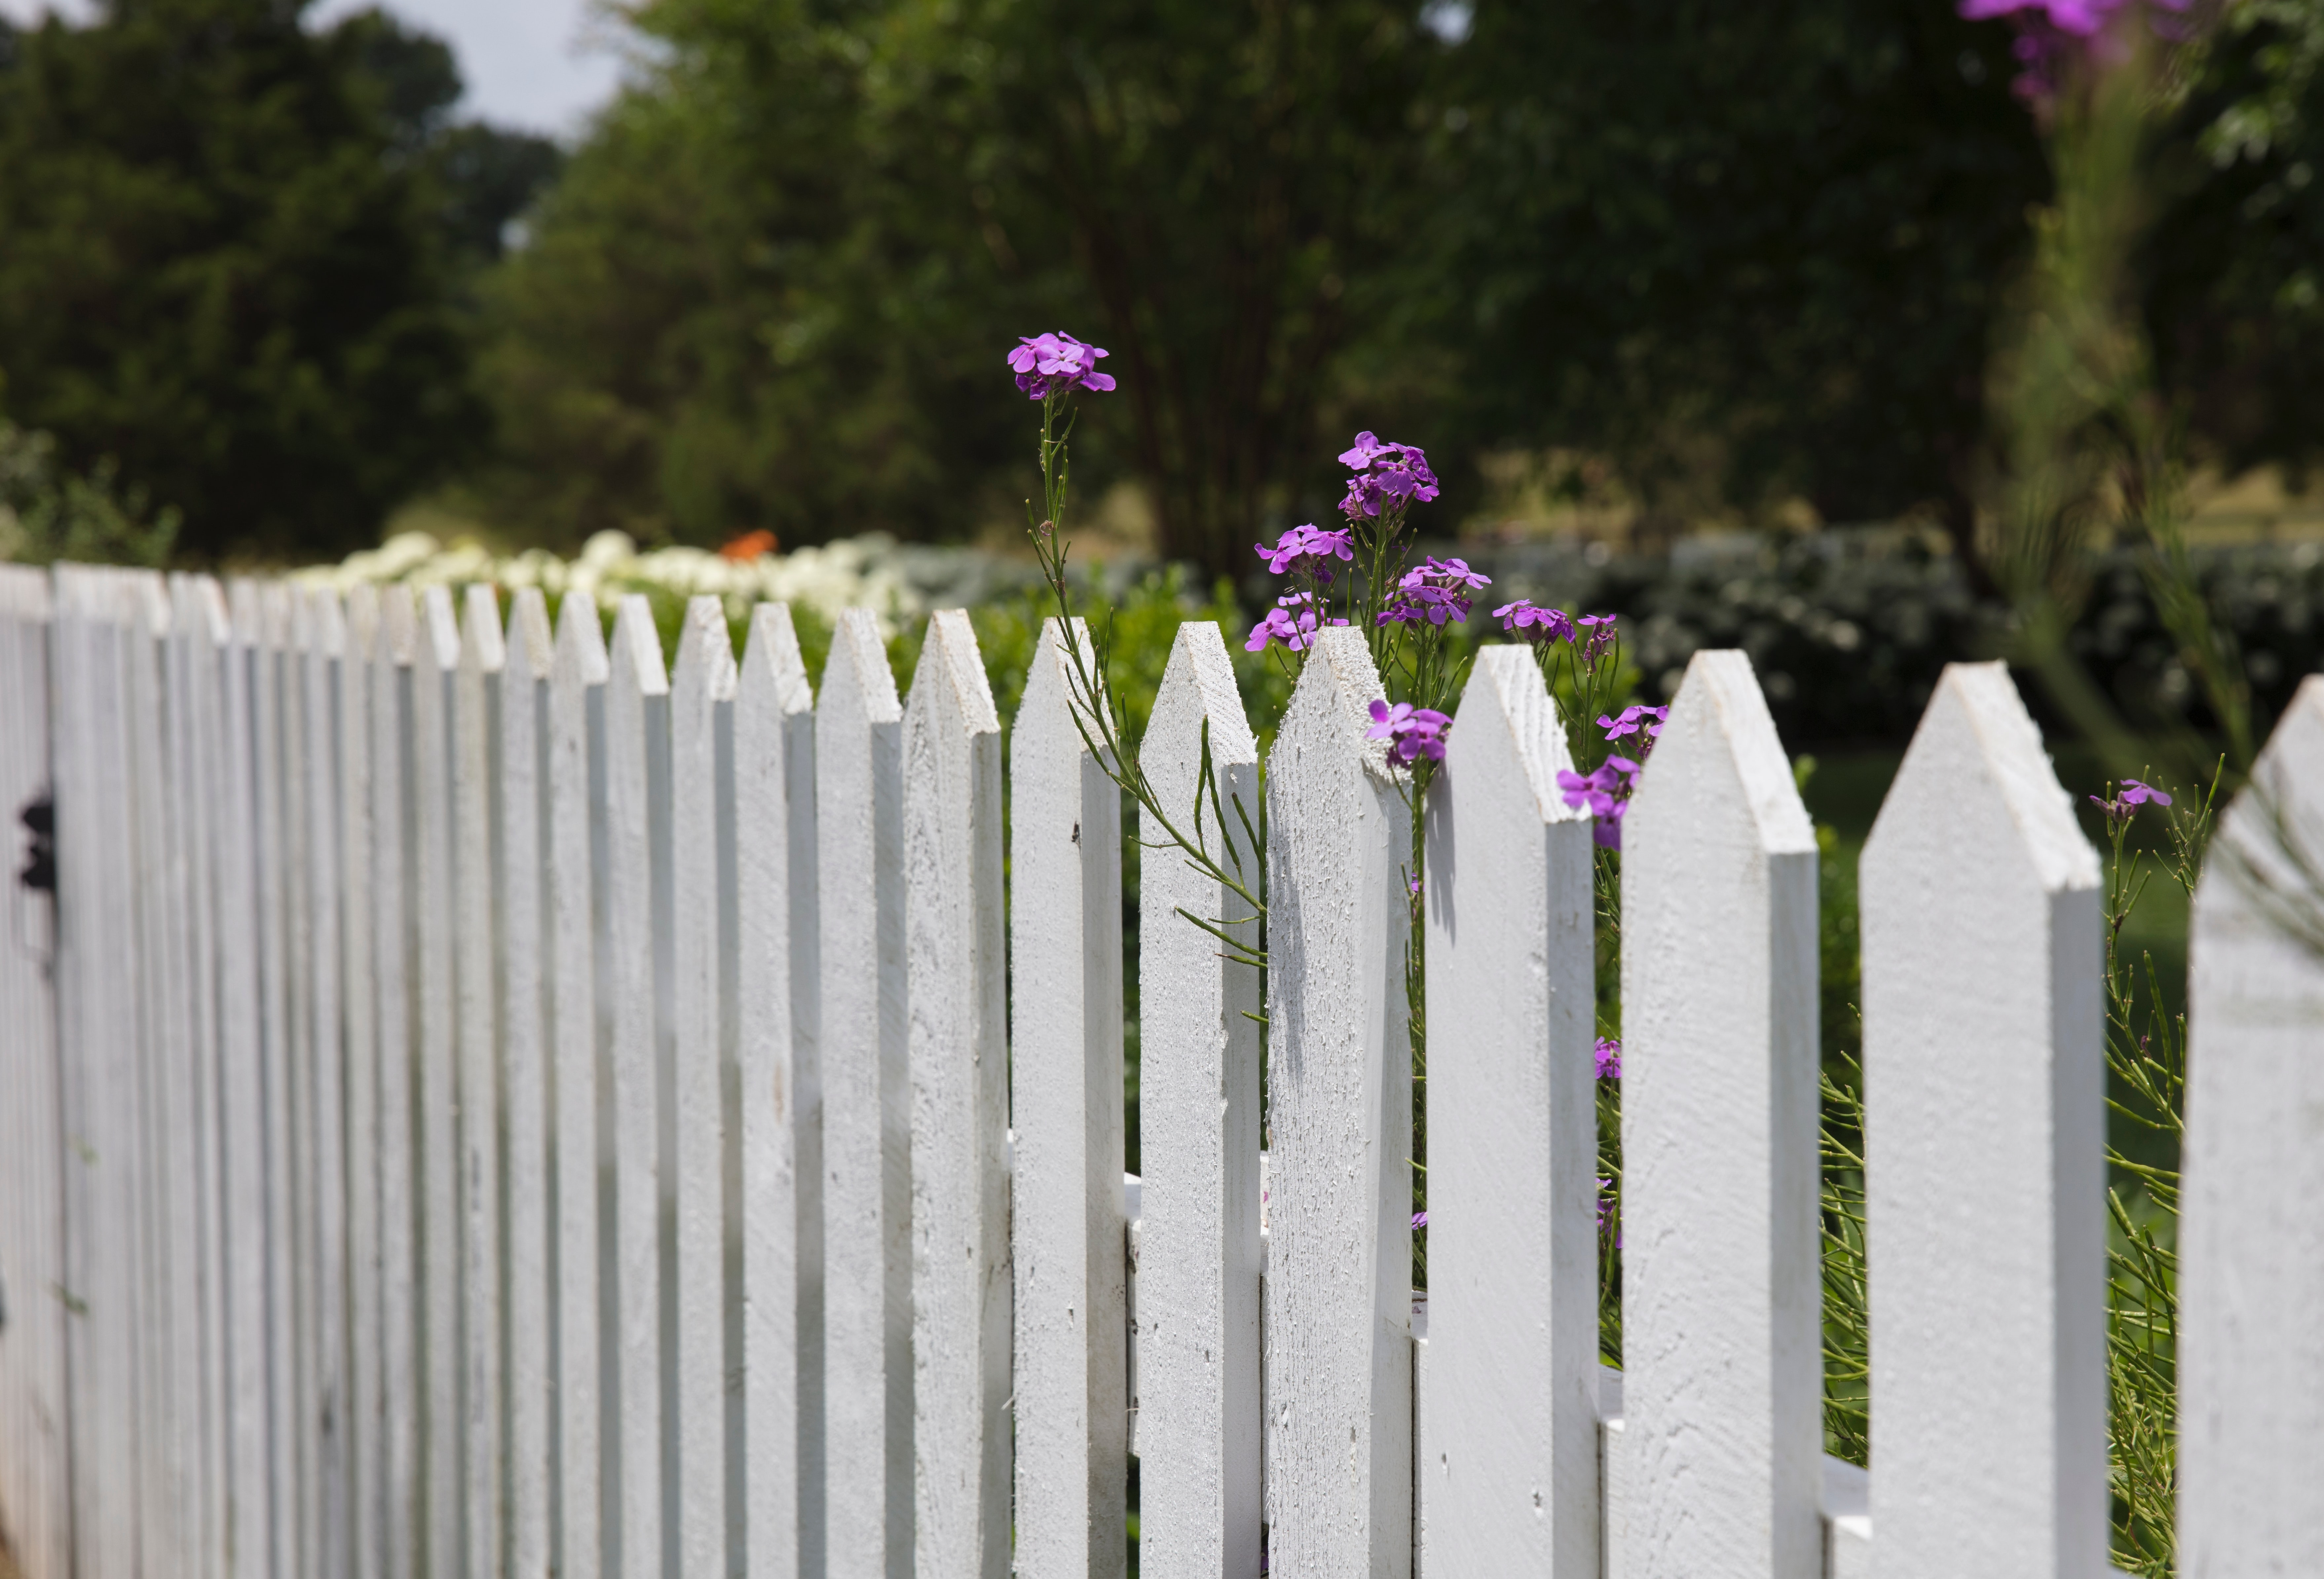 Buying a fencing business